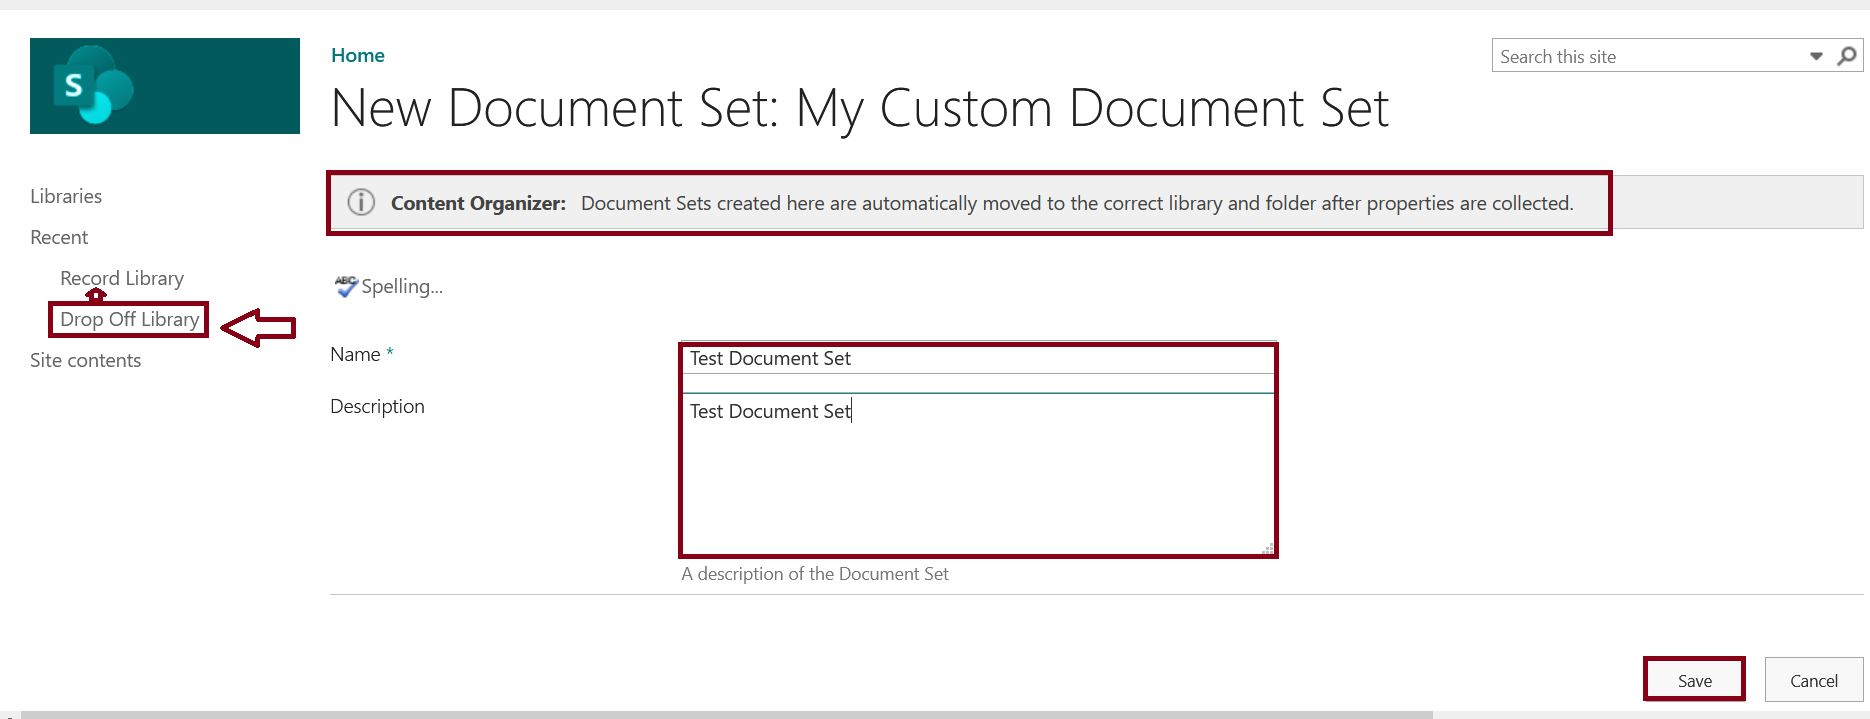 Content Organizer - Document Sets created here are automatically moved to the correct library and folder after properties are collected.